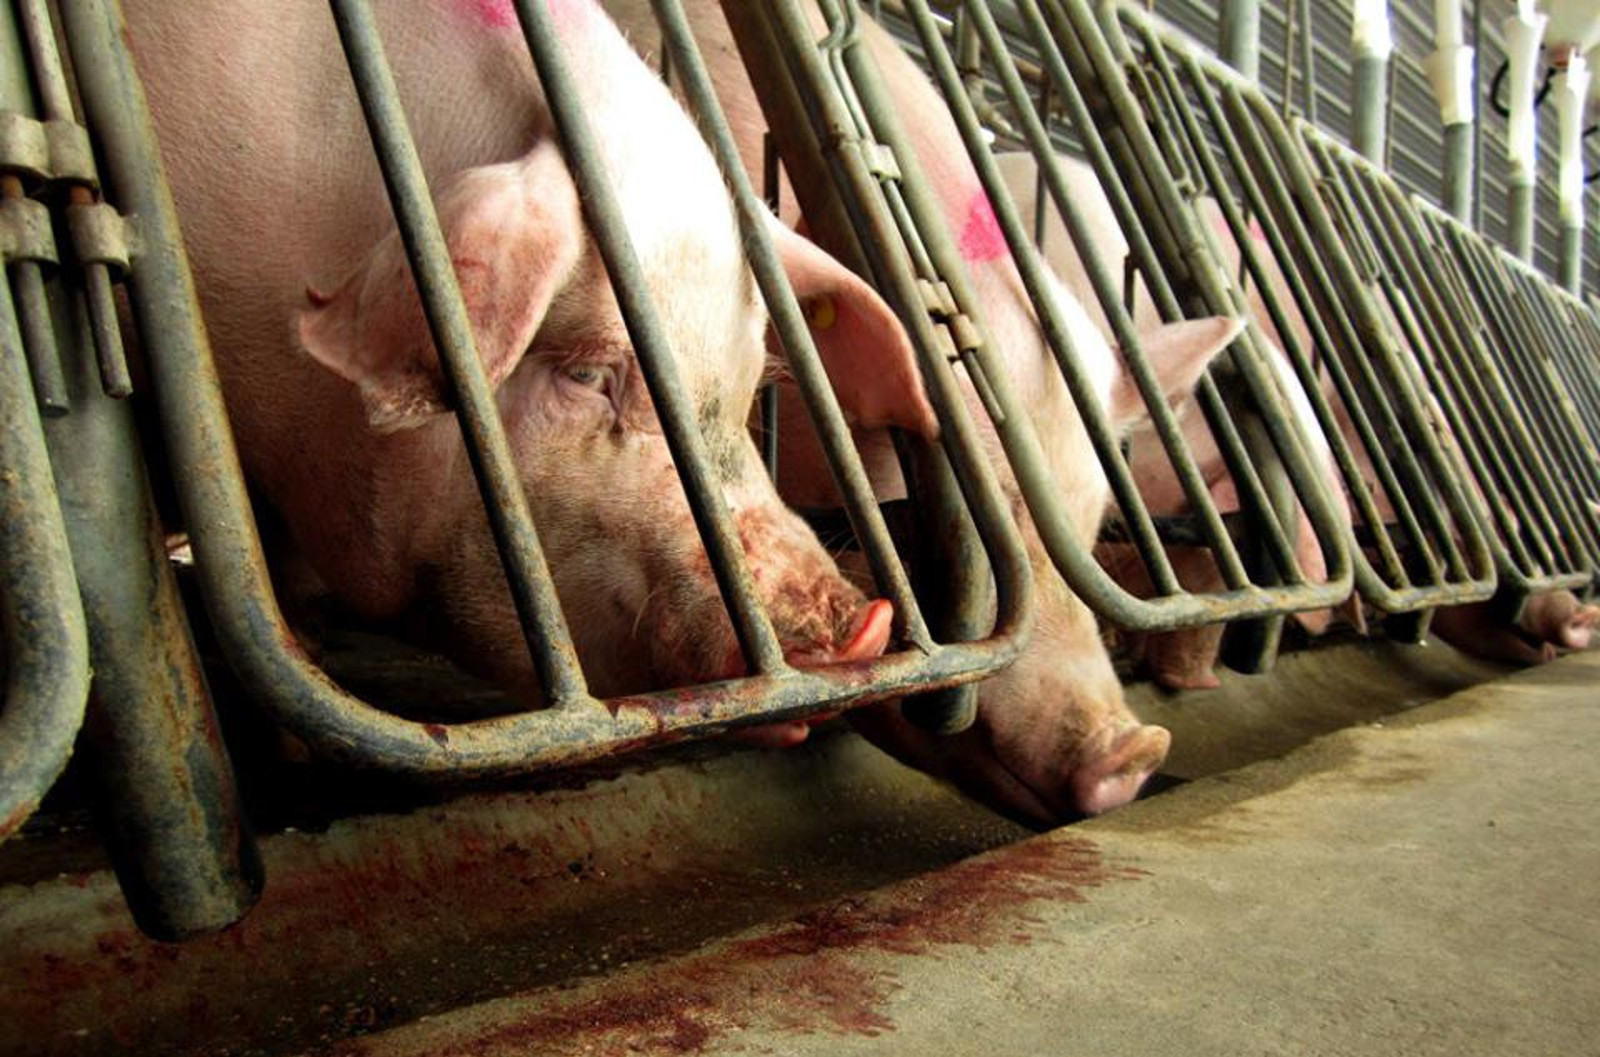 5 Things Factory Farming Harms Besides Animals